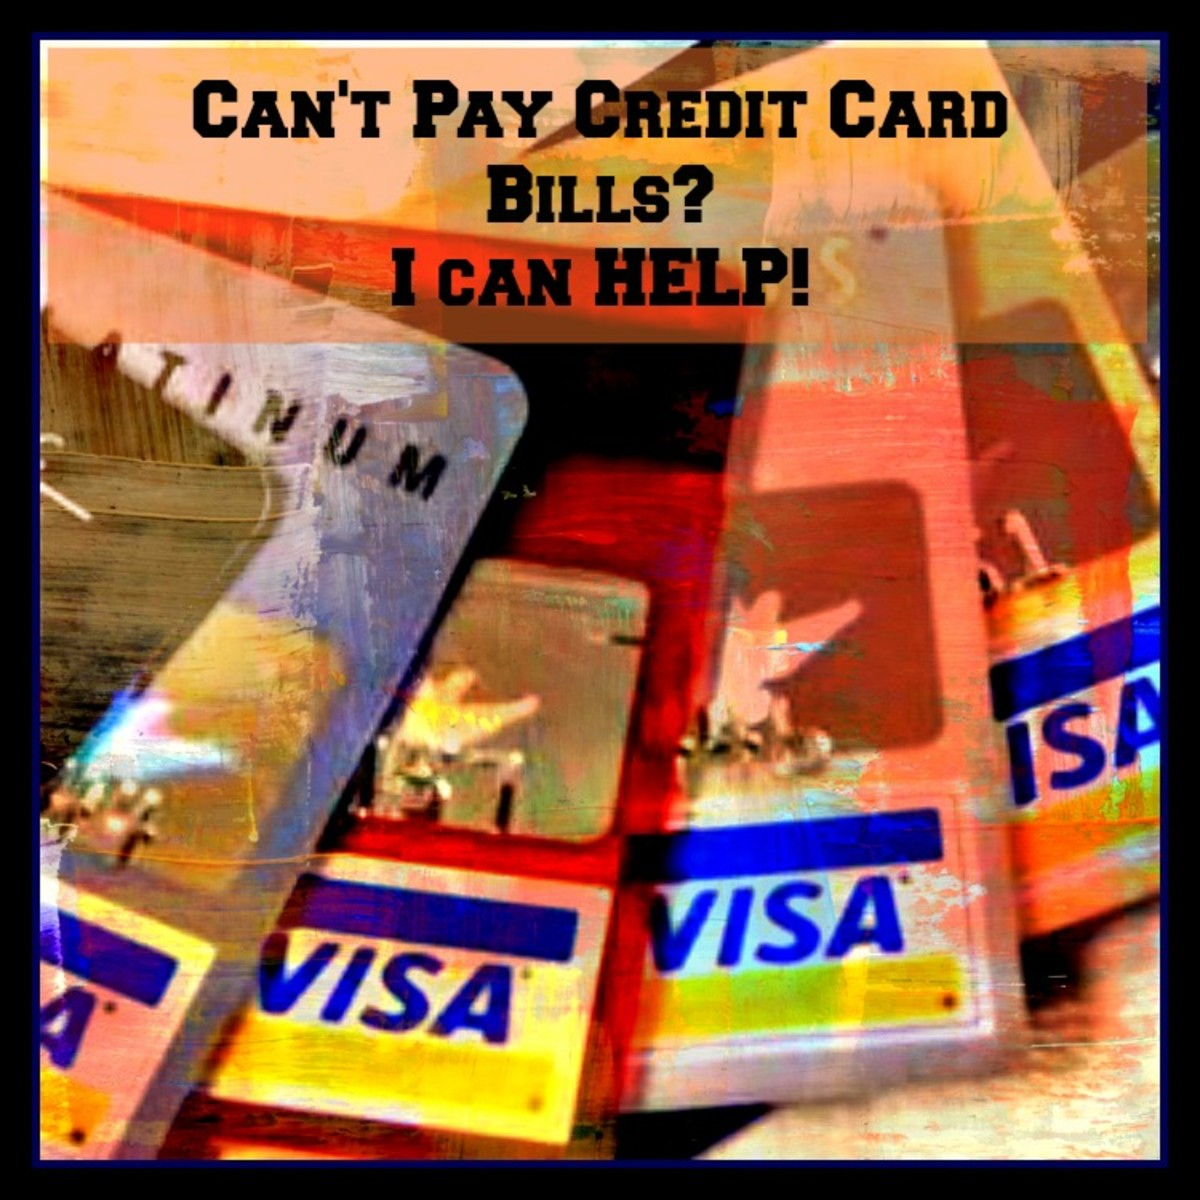 Can't Pay Credit Card Bills?  I can HELP!